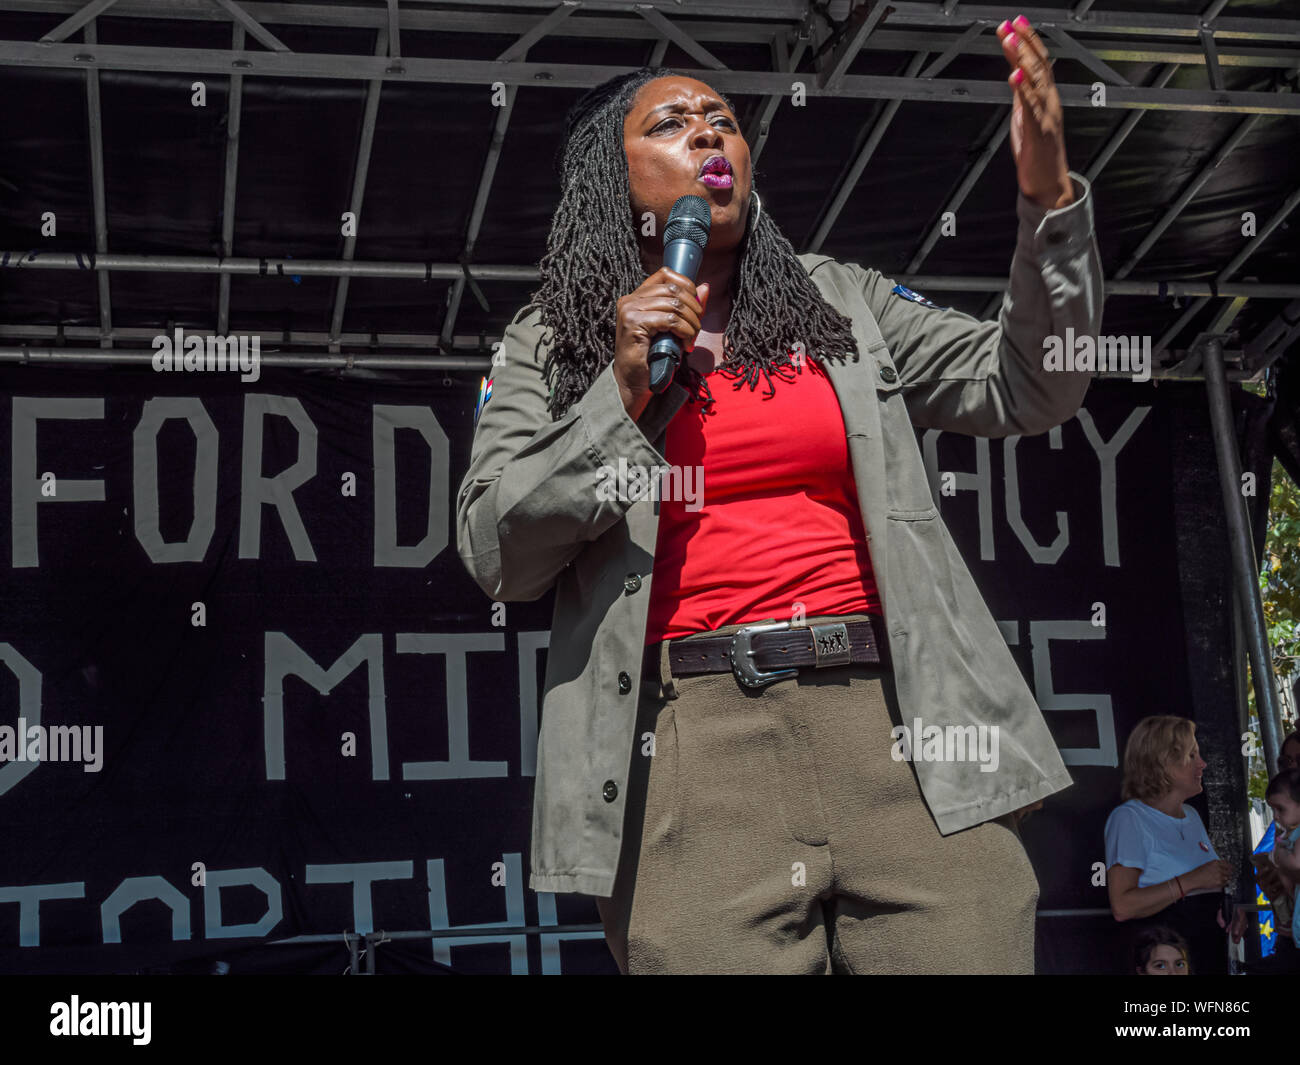 London, UK. 31st August 2019. Shadow Women & Equalities Secretary Dawn Butler speaks to thousands of leave and remain supporters enraged at Boris Johnson's attack on our democracy by shutting down Parliament to prevent discussion on leaving Europe without a deal at the Whitehall rally.  The rally was hosted by Another Europe Is Possible, Green Party, Momentum, YouthStrike4Climate, UK Student Climate Network, Stop Trump, Owen Jones and Labour for a Socialist Europe, and speakers at the rally included John McDonnell, Diane Abbott, Sian Berry, Owen Jones, trade unionists and grass roots activists Stock Photo